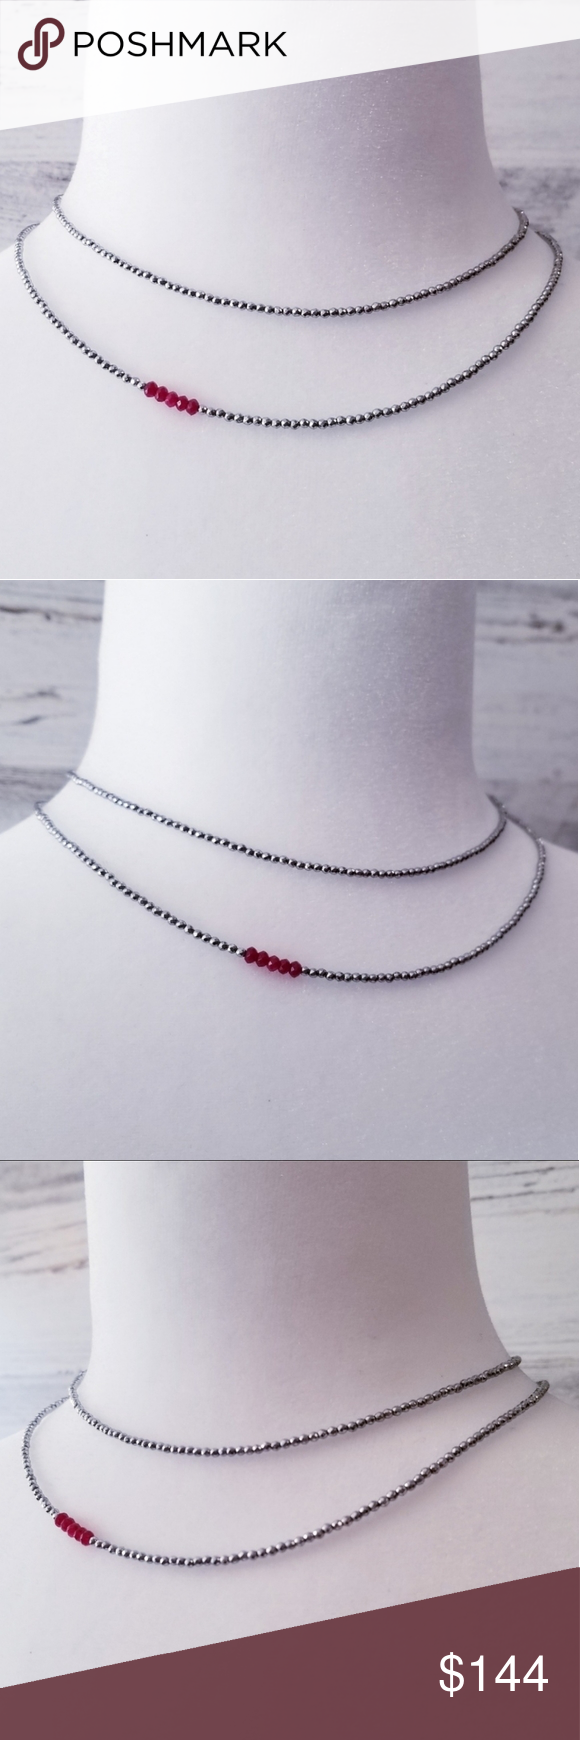 Ruby & Hematite Double Row Stacking Necklace